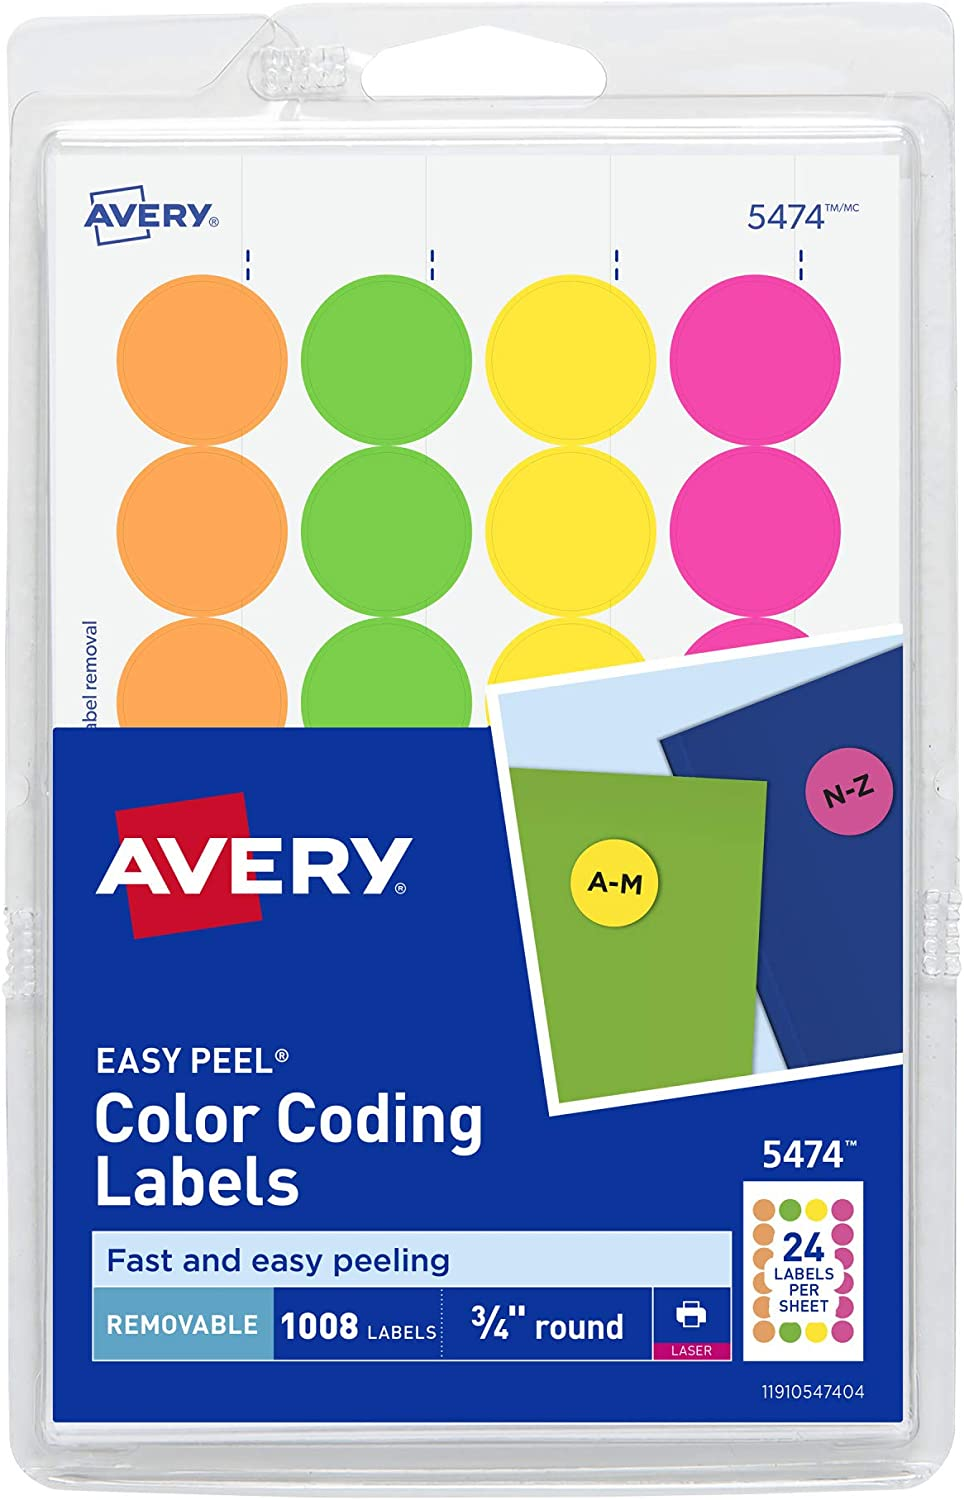 AVERY Removable Print or Write Dot Stickers 3/4 Inch, Assorted Colors, Pack of 1008 Round Stickers (5474), White : Office Products